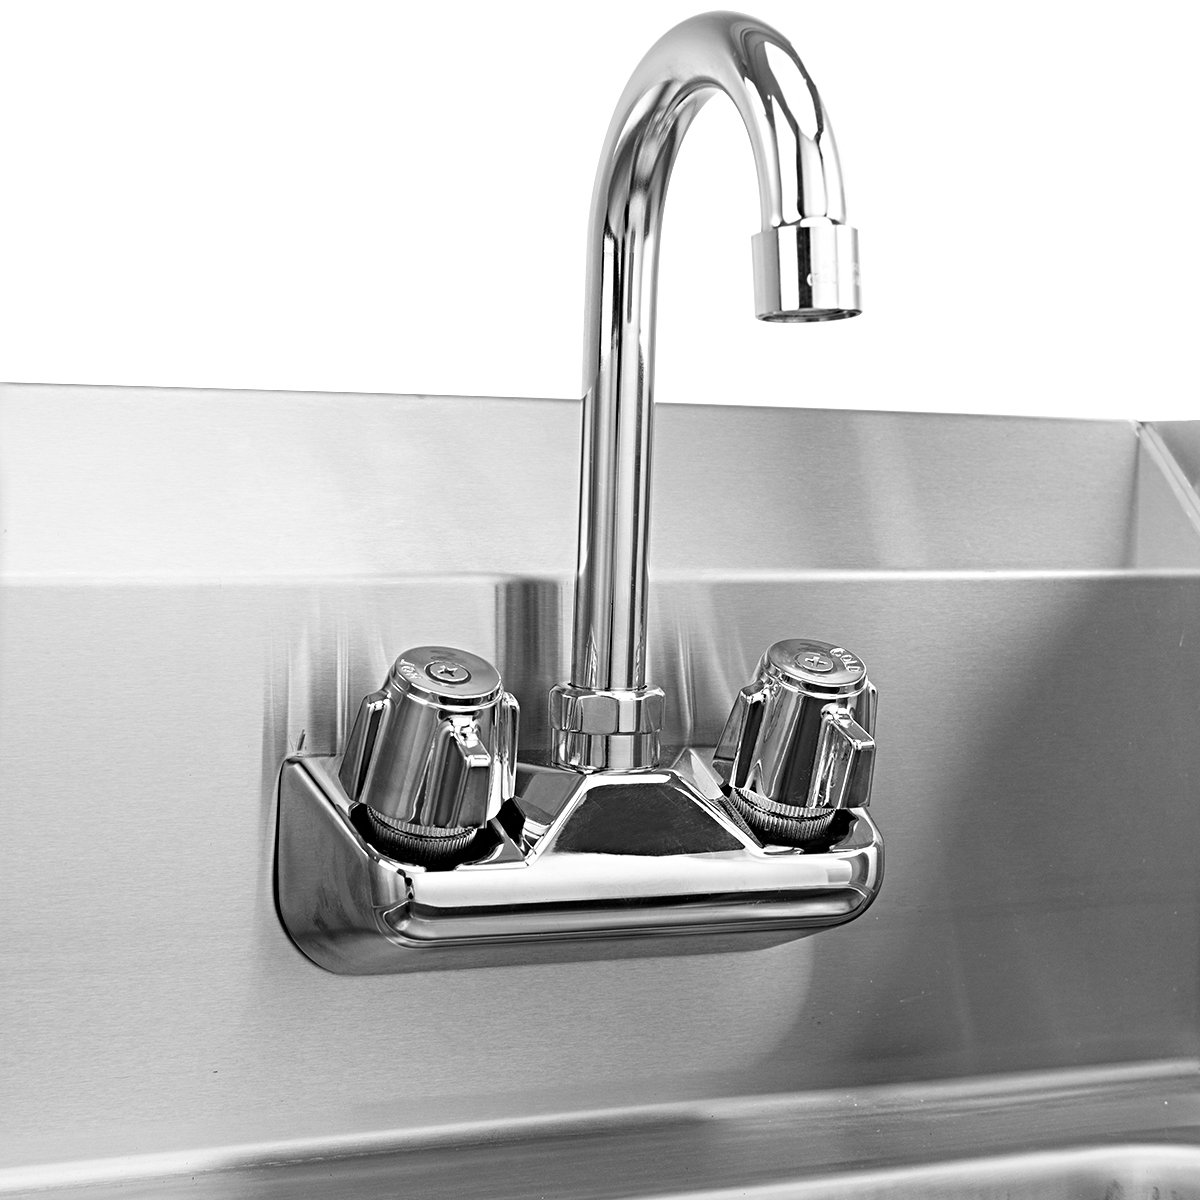 Giantex Stainless Steel Hand Washing Sink with Wall Mount Faucet & Side Splashes NSF Commercial Kitchen Heavy Duty Hot & Cold Temperature Water Inlet Washing Basin, Silver by Giantex (Image #4)